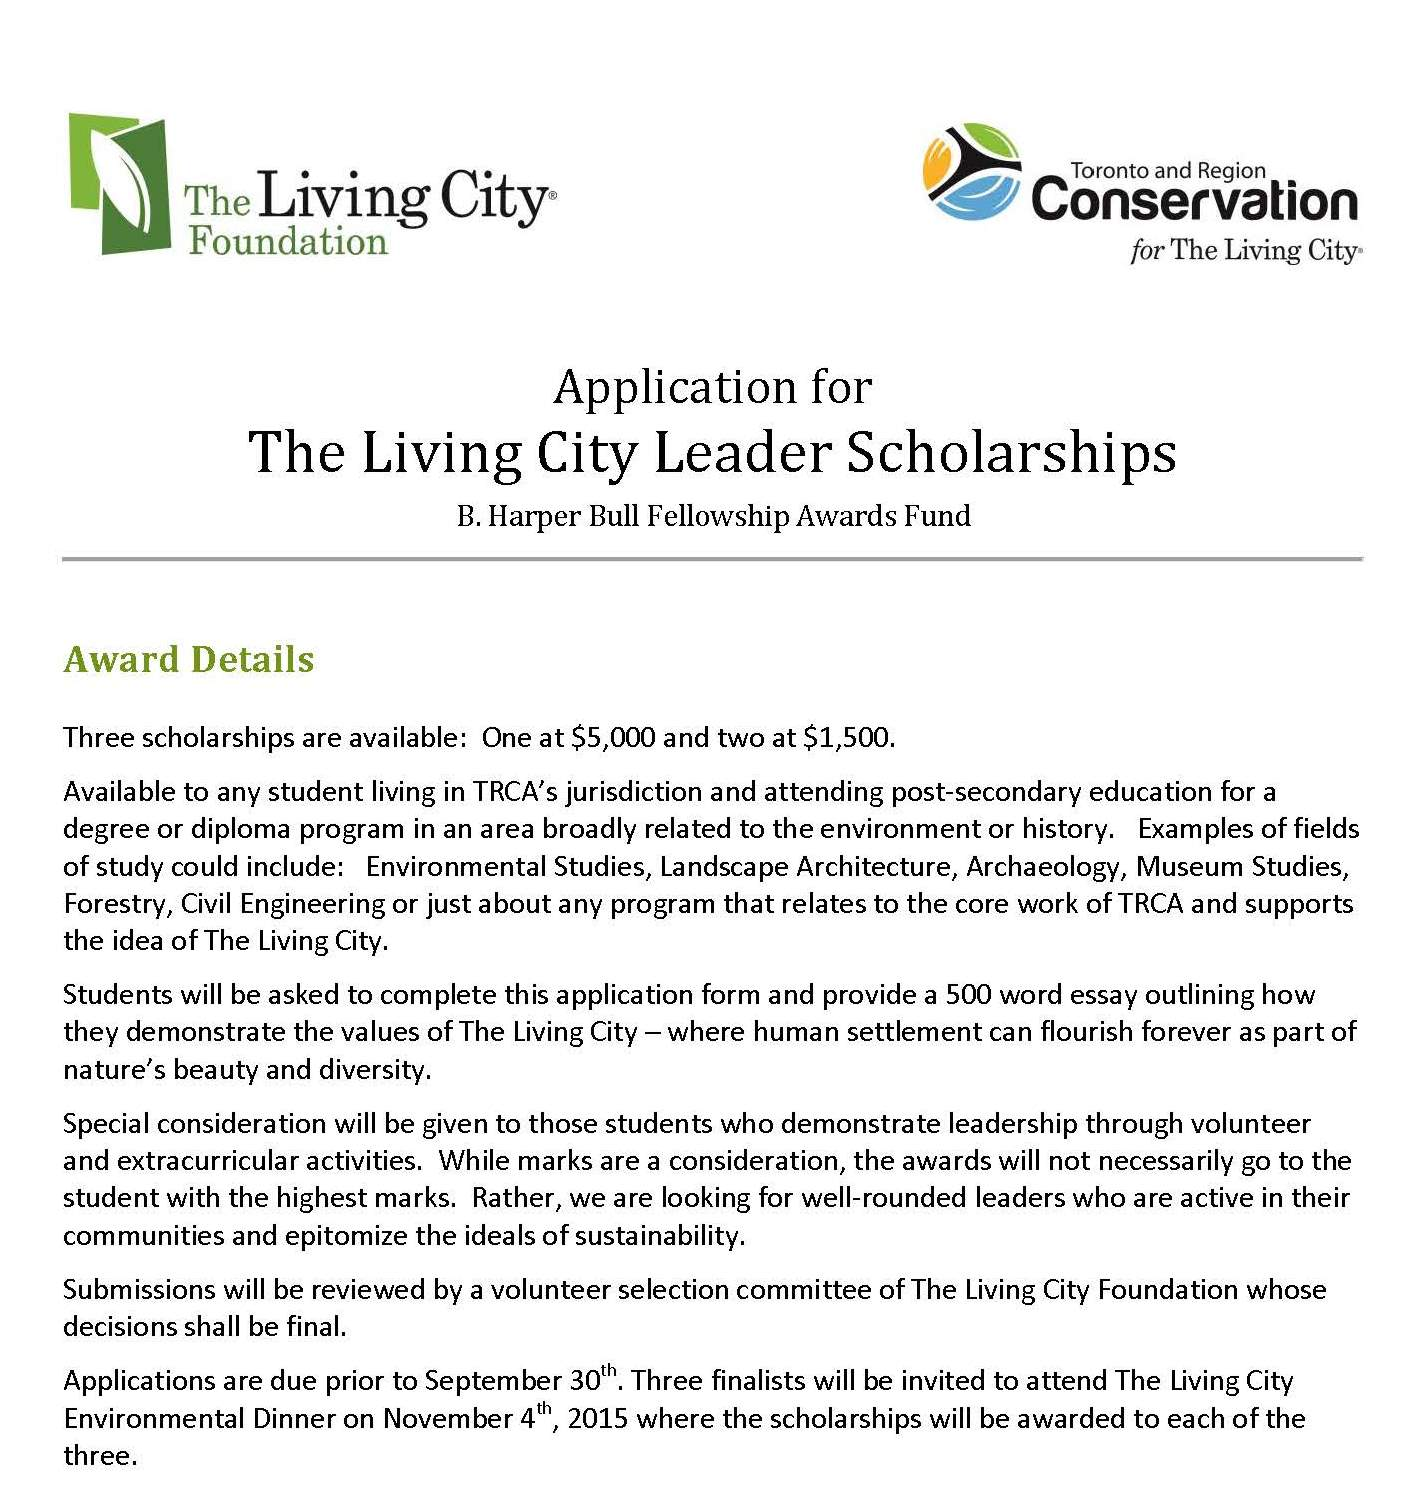 living city reg fdn on announcing the living city leader living cityreg fdn on announcing the living city leader scholarships 2015 more info at t co gyqminbaqf environmental toronto